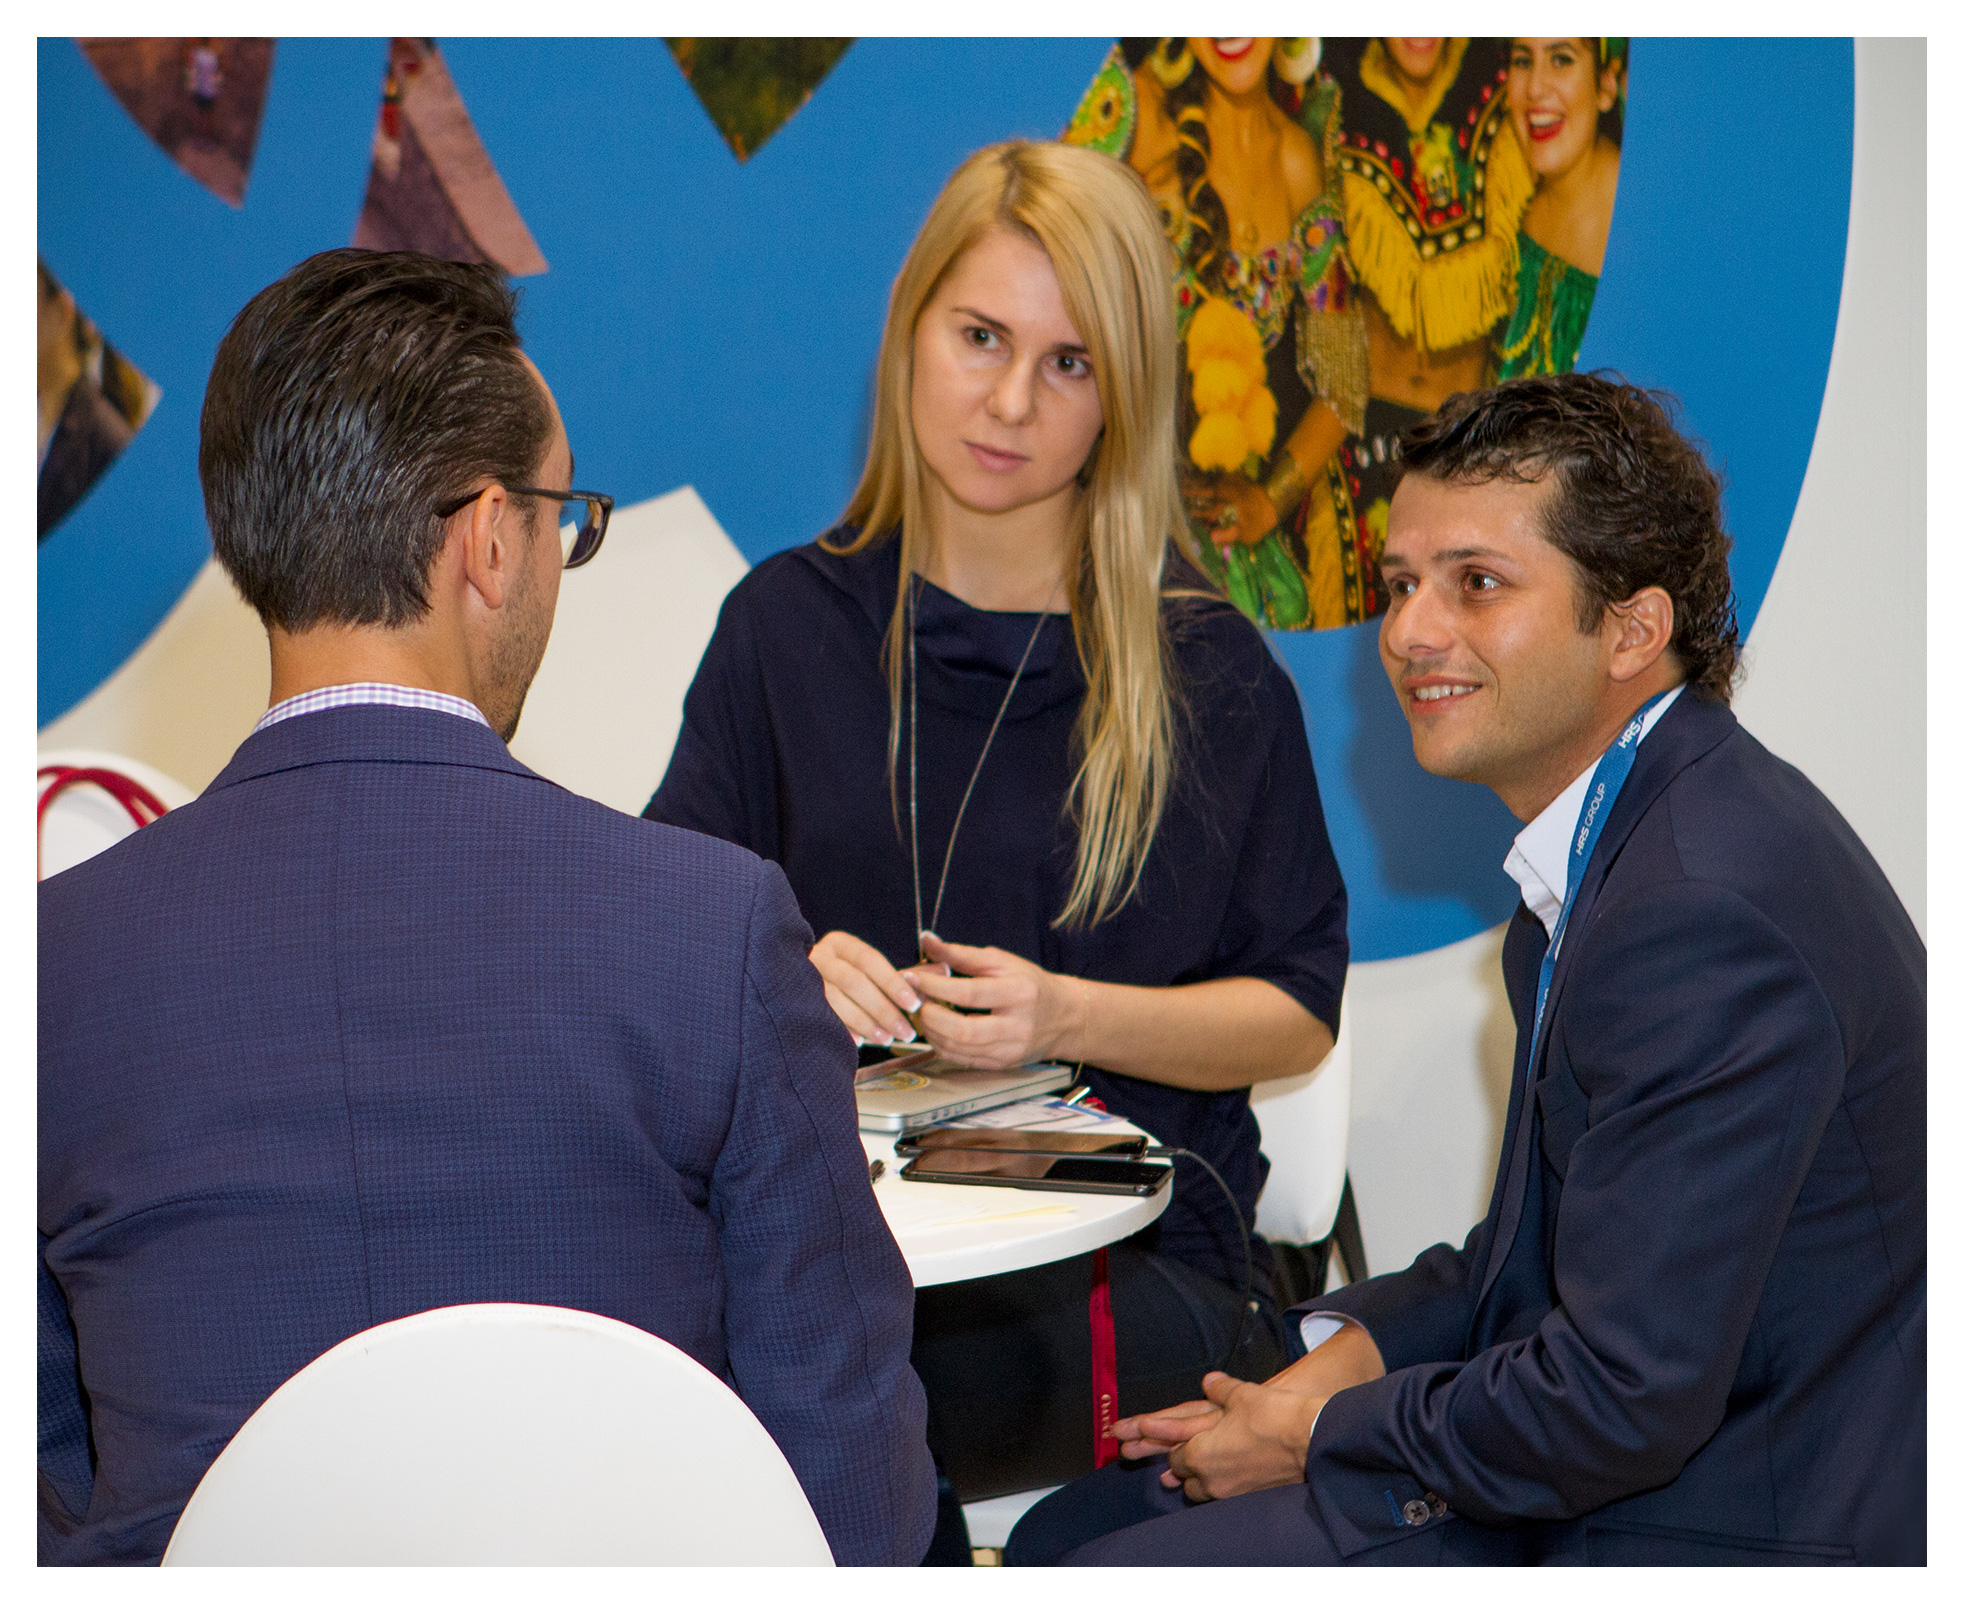 Exhibition photography: Networking at Buyers' Lounge, World Travel Market 2017, ExCel London